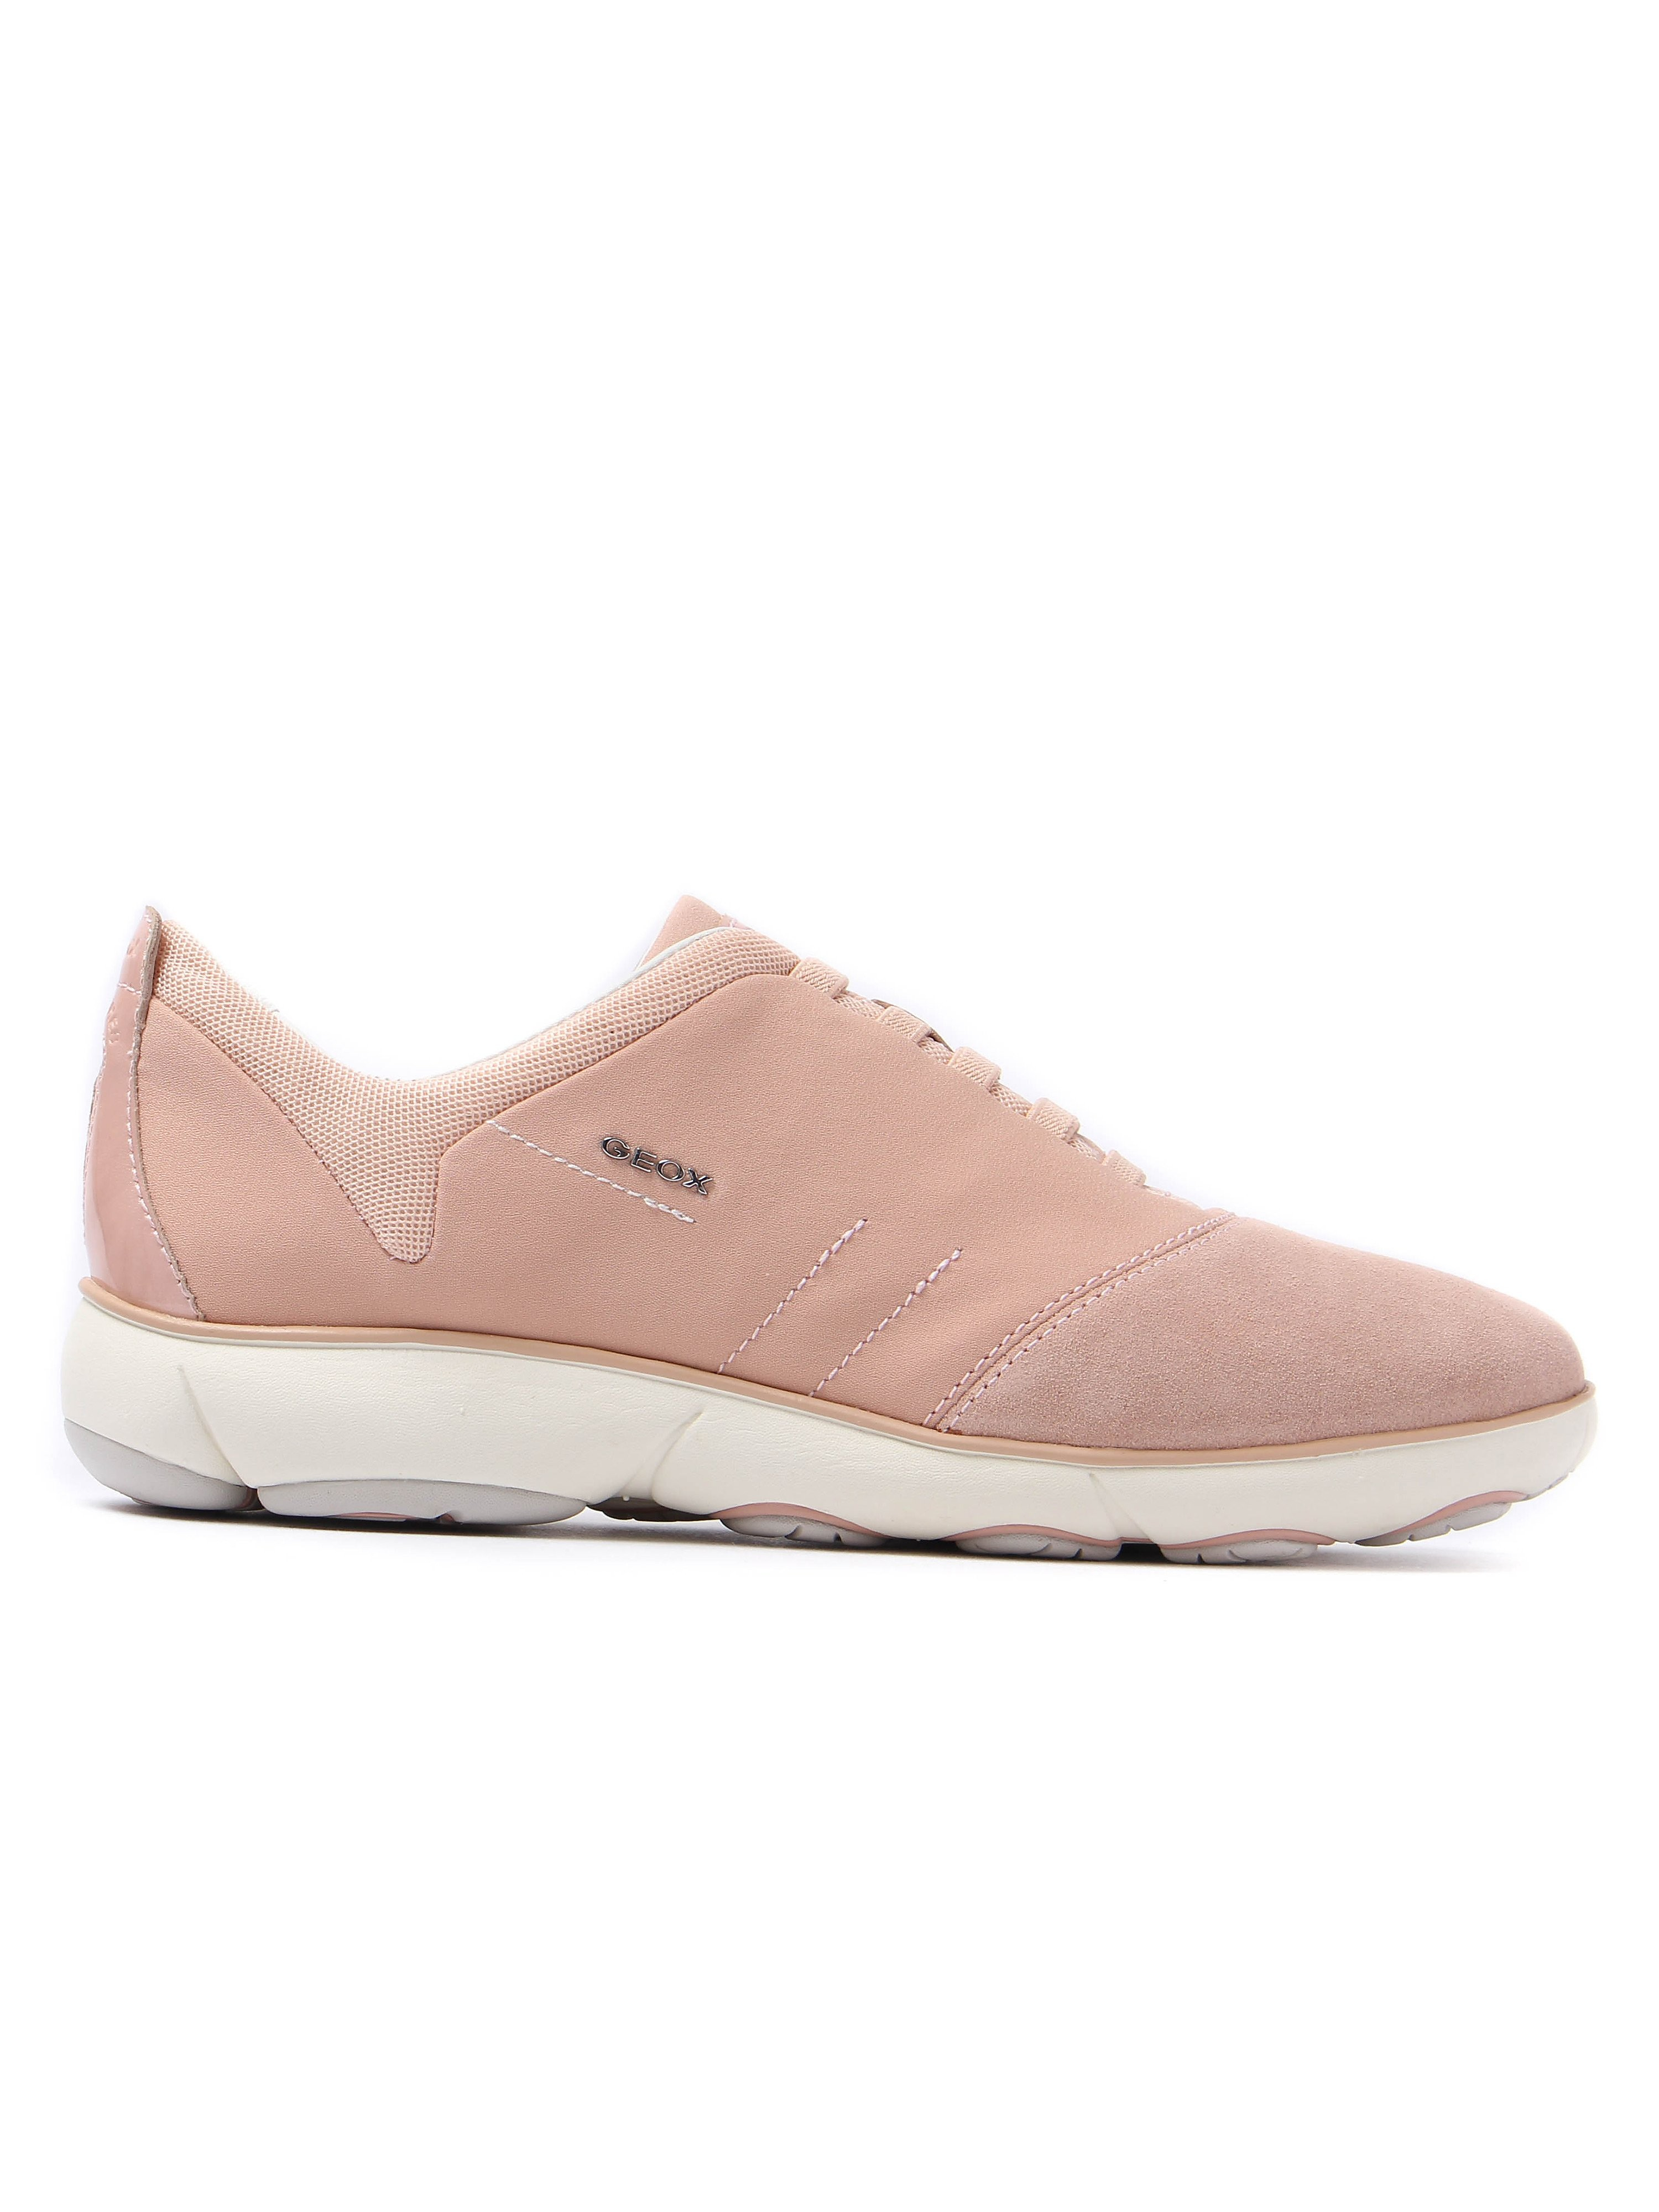 Geox Women's Nebula Textile & Suede Trainers - Light Pink